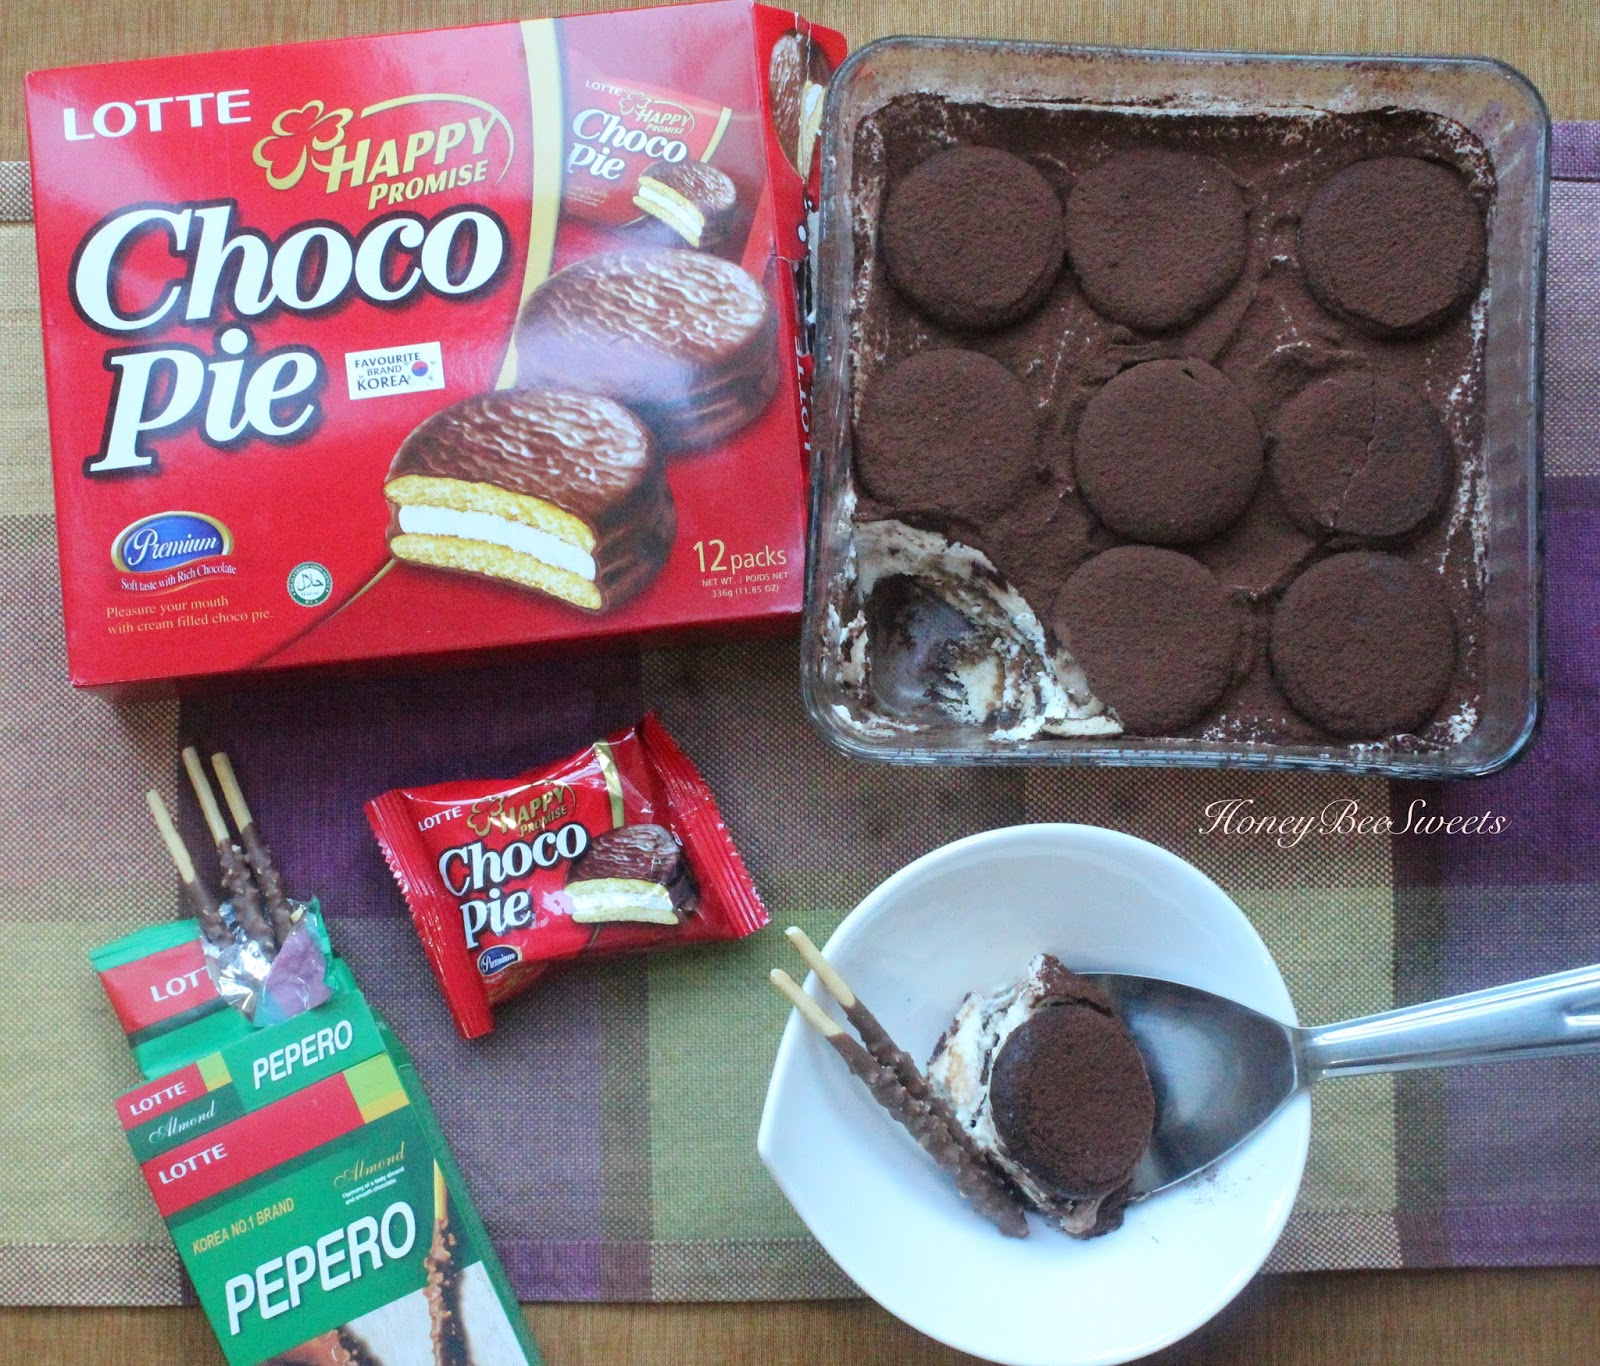 Lotte Choco Pie Recipe Marshmallow 168g A Delicious And Yet Simple To Make Tiramisu Dessert Made Using The Pies